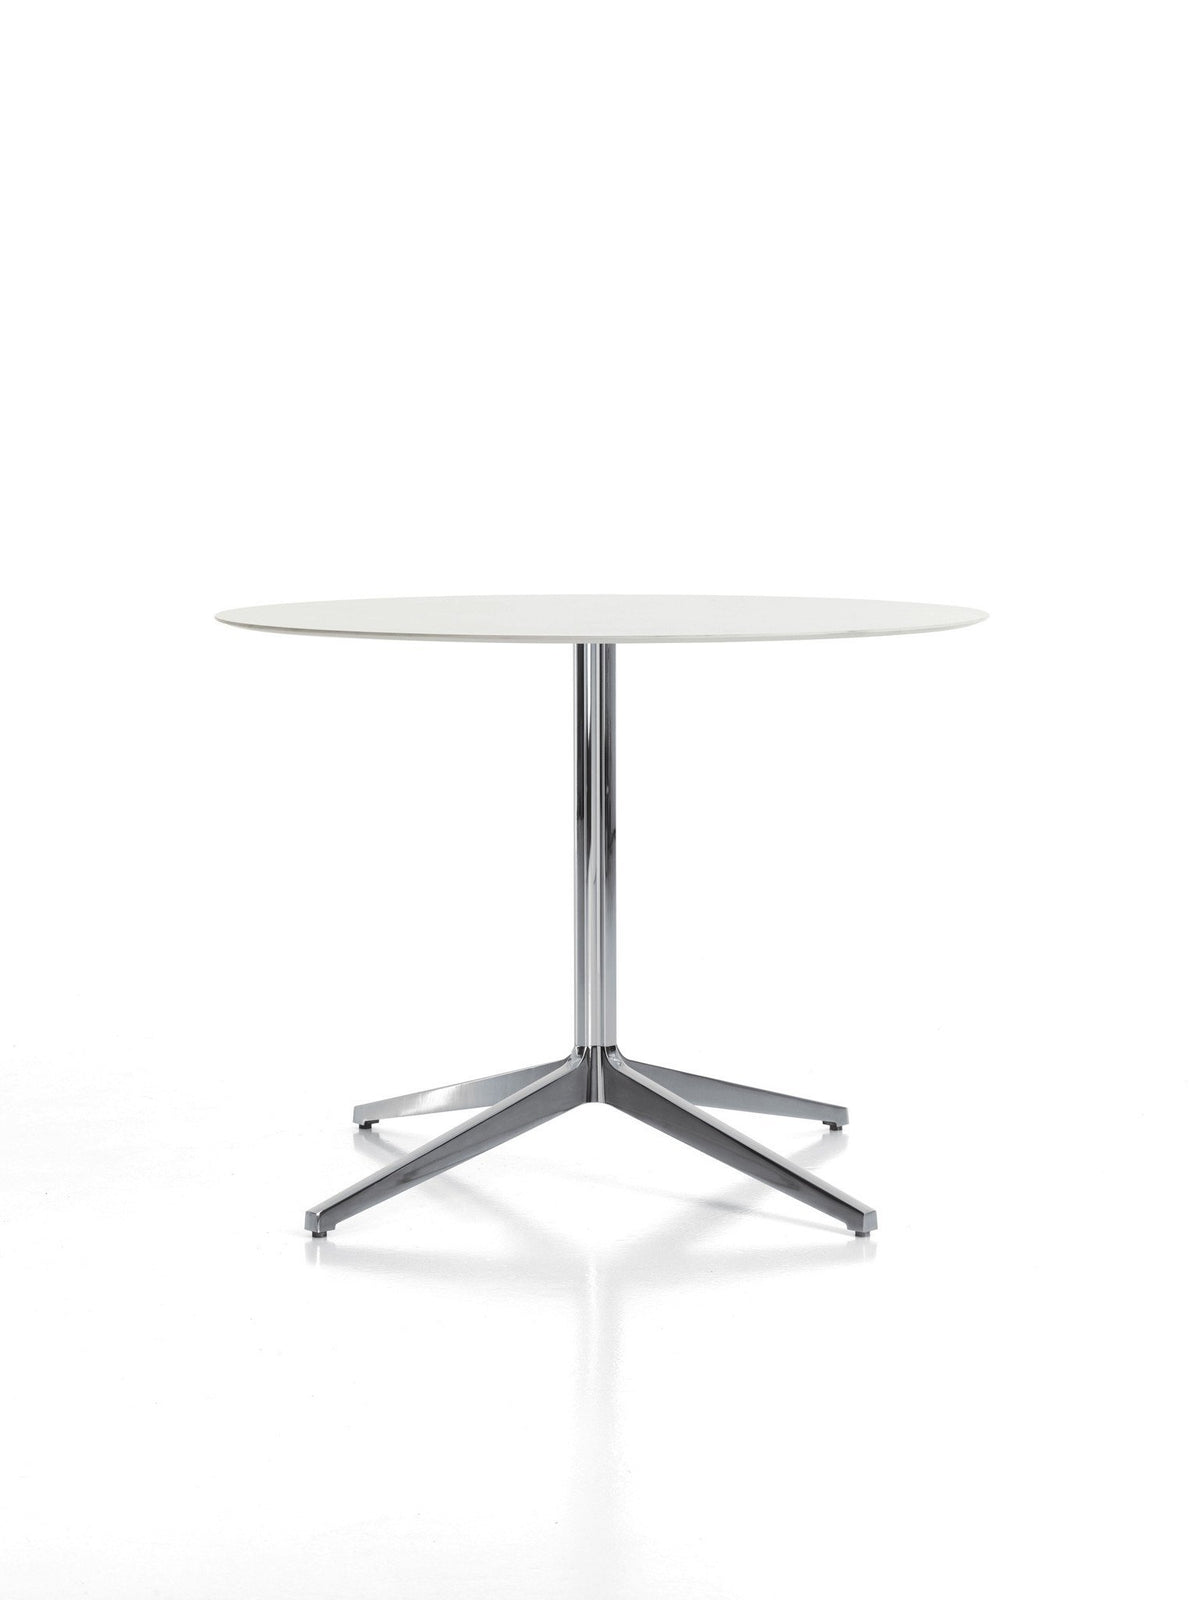 Ypsilon 4 4795 Dining Base-Pedrali-Contract Furniture Store